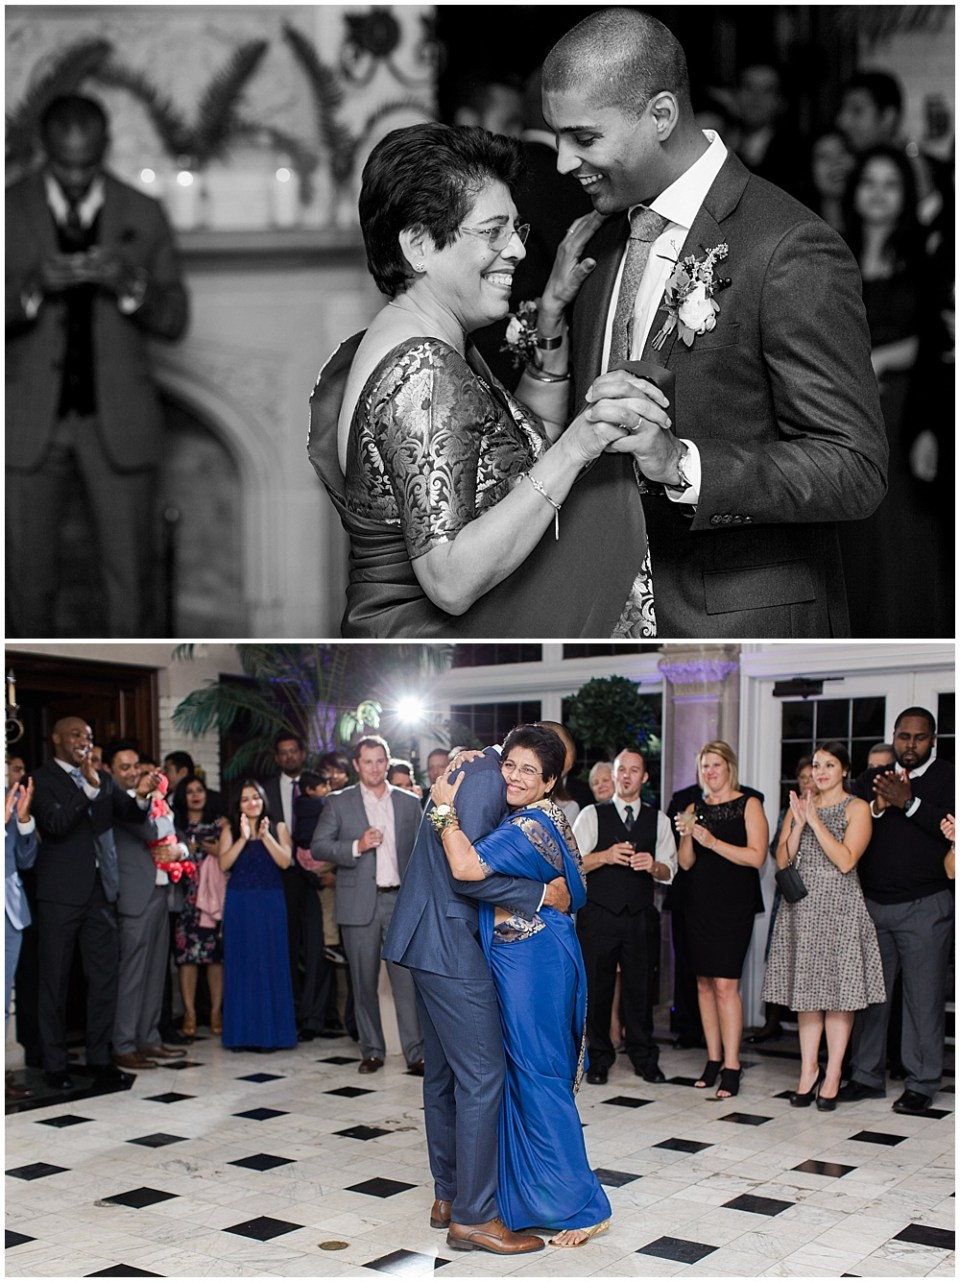 Mother son dance   Navy and Gold Wedding at Laurel Hall with Ivan & Louise Photography + Jessica Dum Wedding Coordination